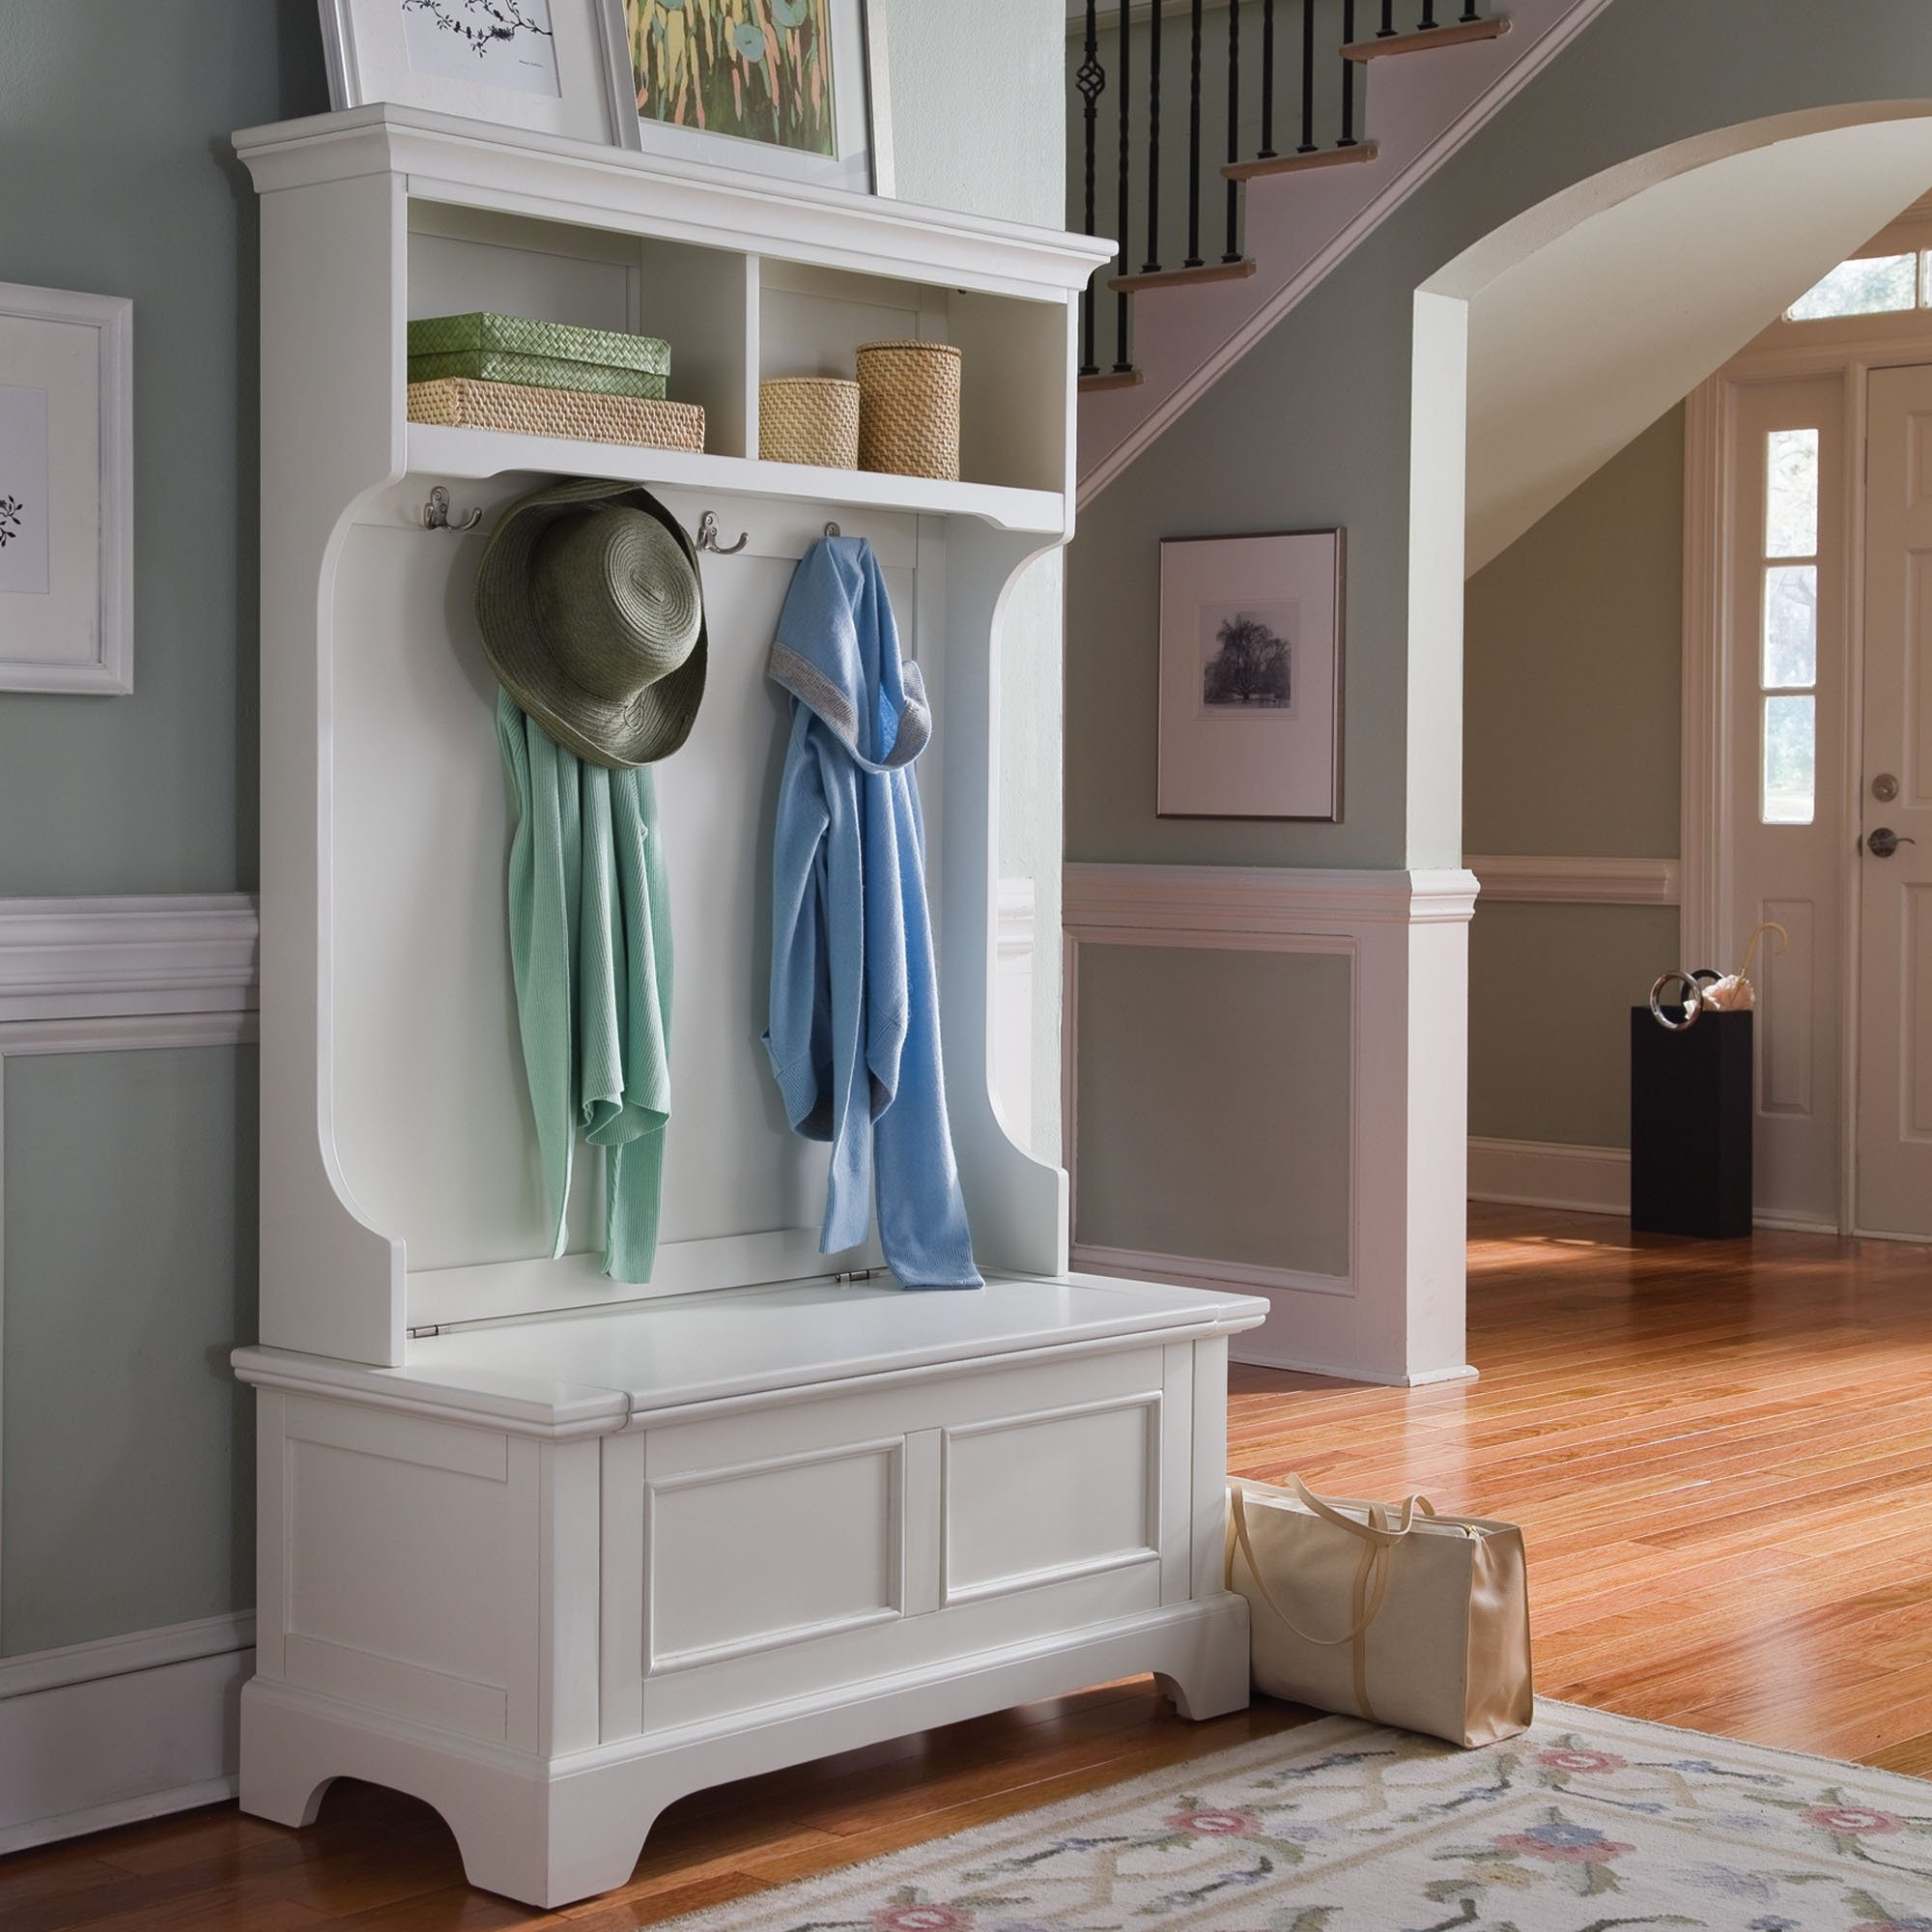 hall-storage-cabinet-has-one-of-the-best-kind-of-other-is-storage-bench-in-the-hallway-20-ideas-for-hallway-space-saving